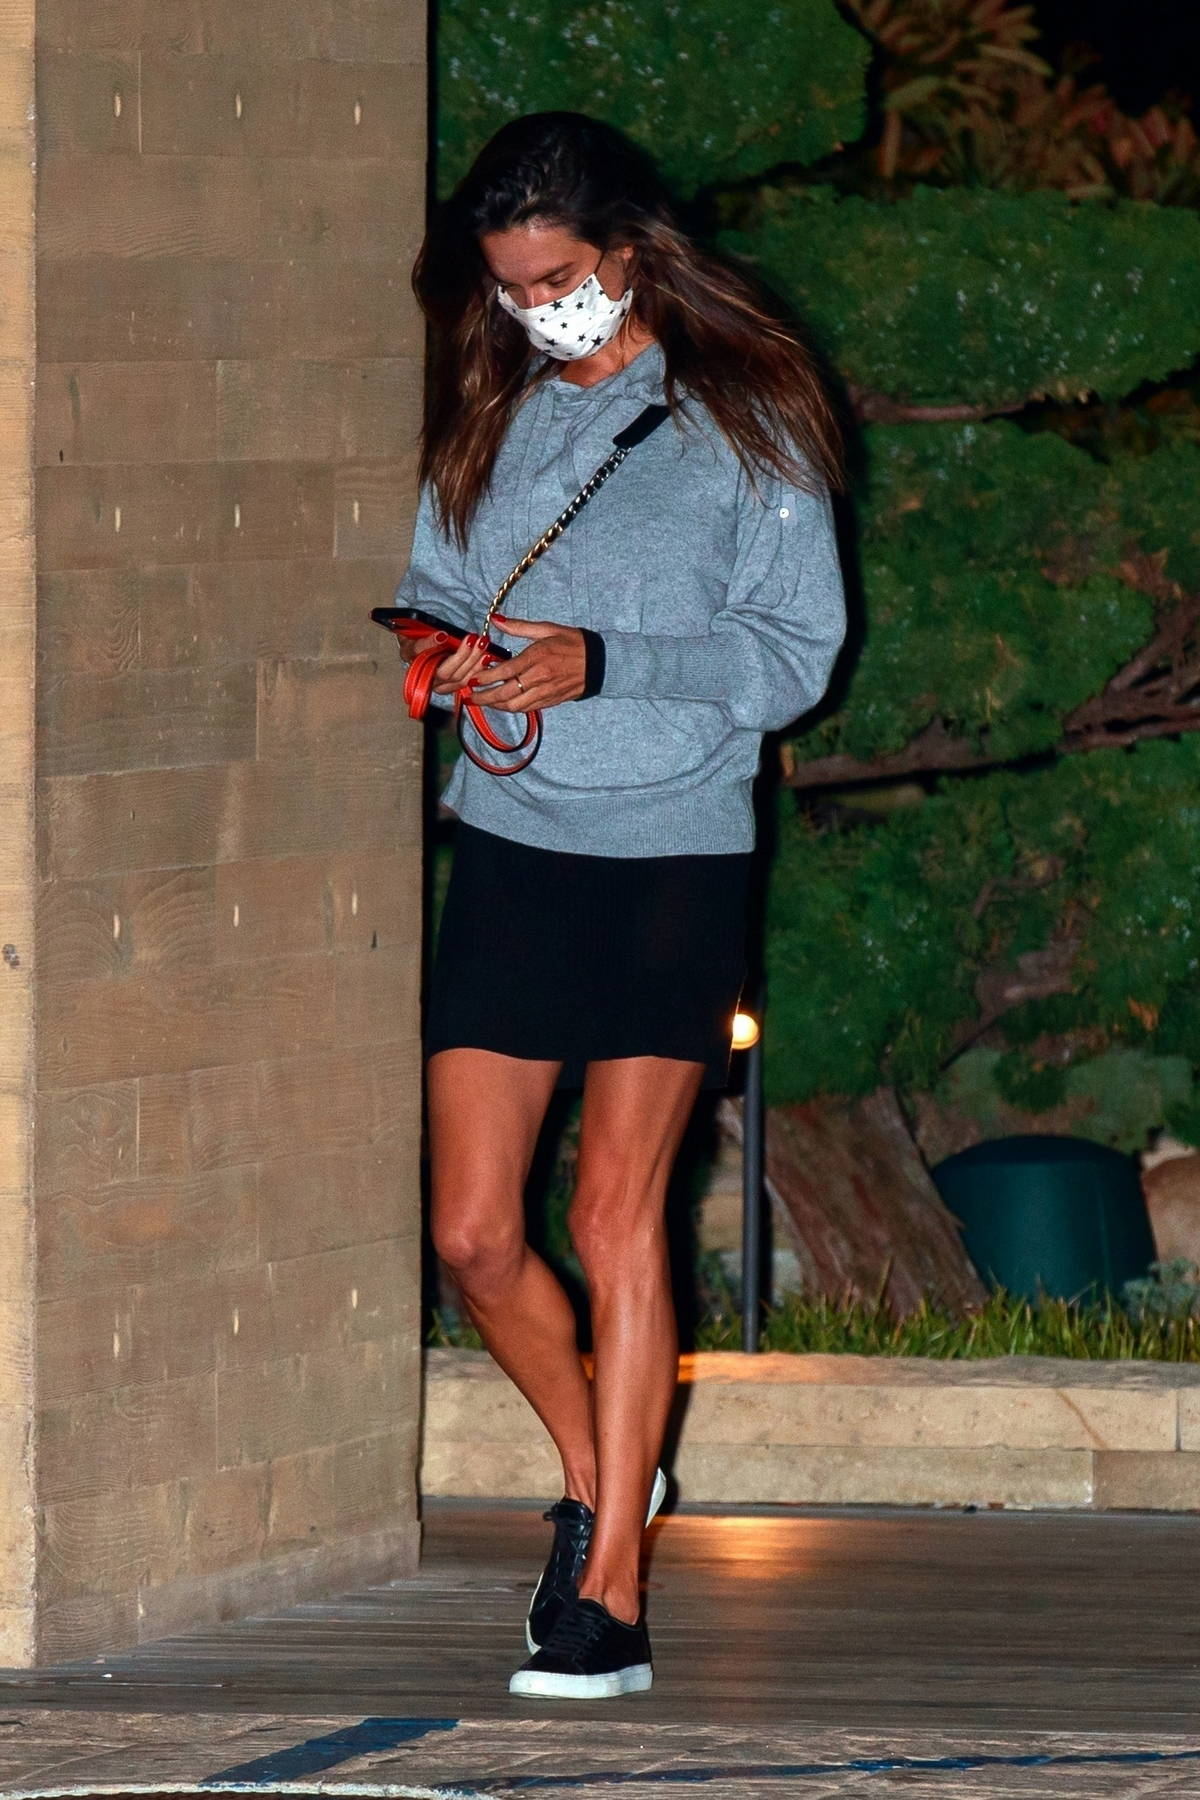 Alessandra Ambrosio keeps it casual as she steps out to late night dinner with a male friend at Nobu in Malibu, California